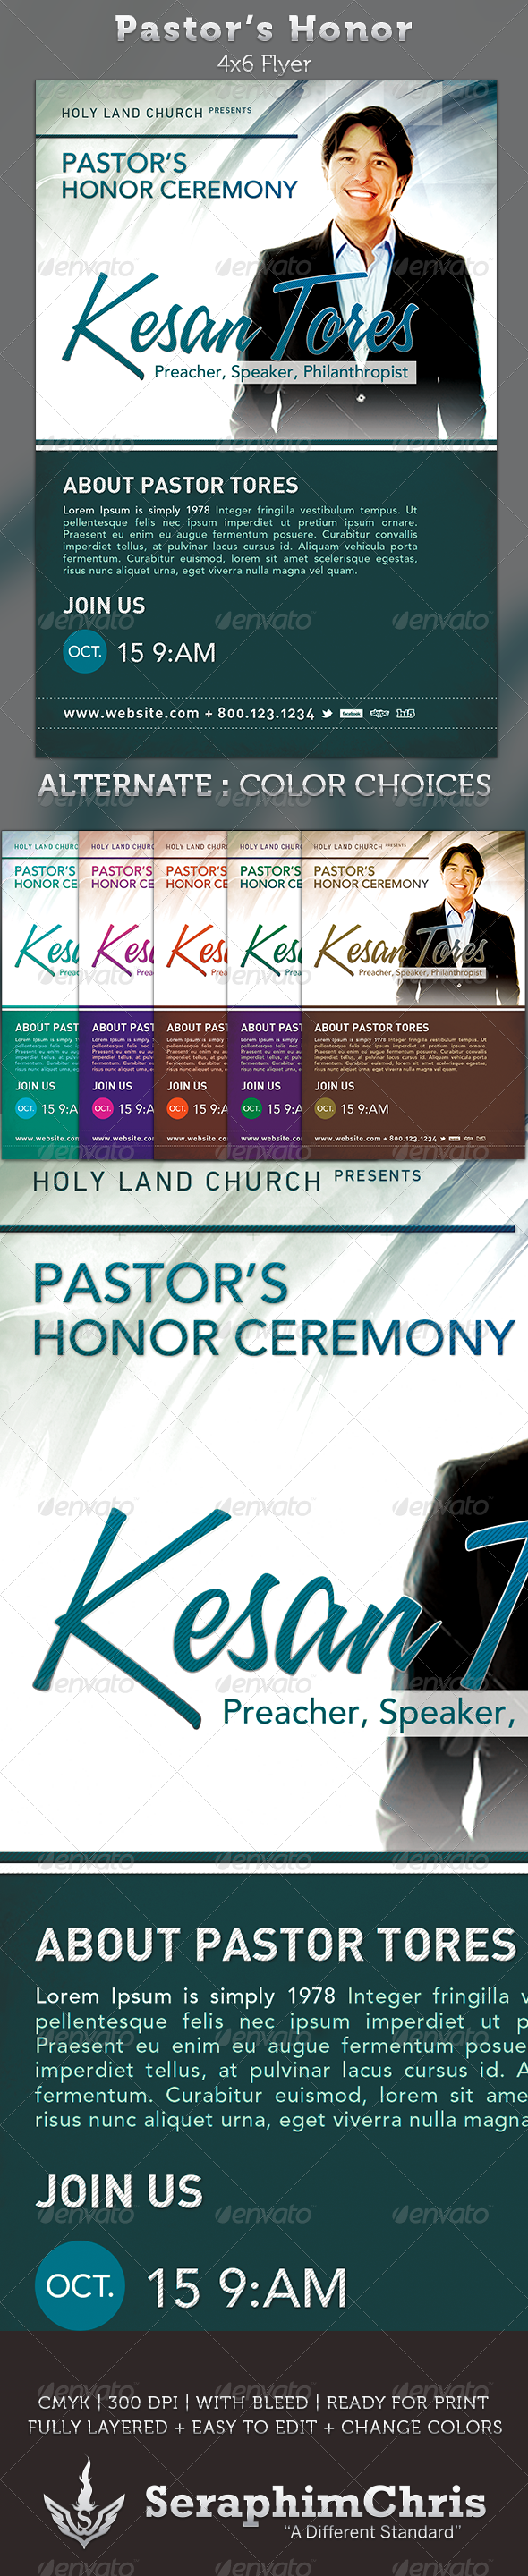 Pastor&#x27;s Honor: Church Flyer Template - Church Flyers